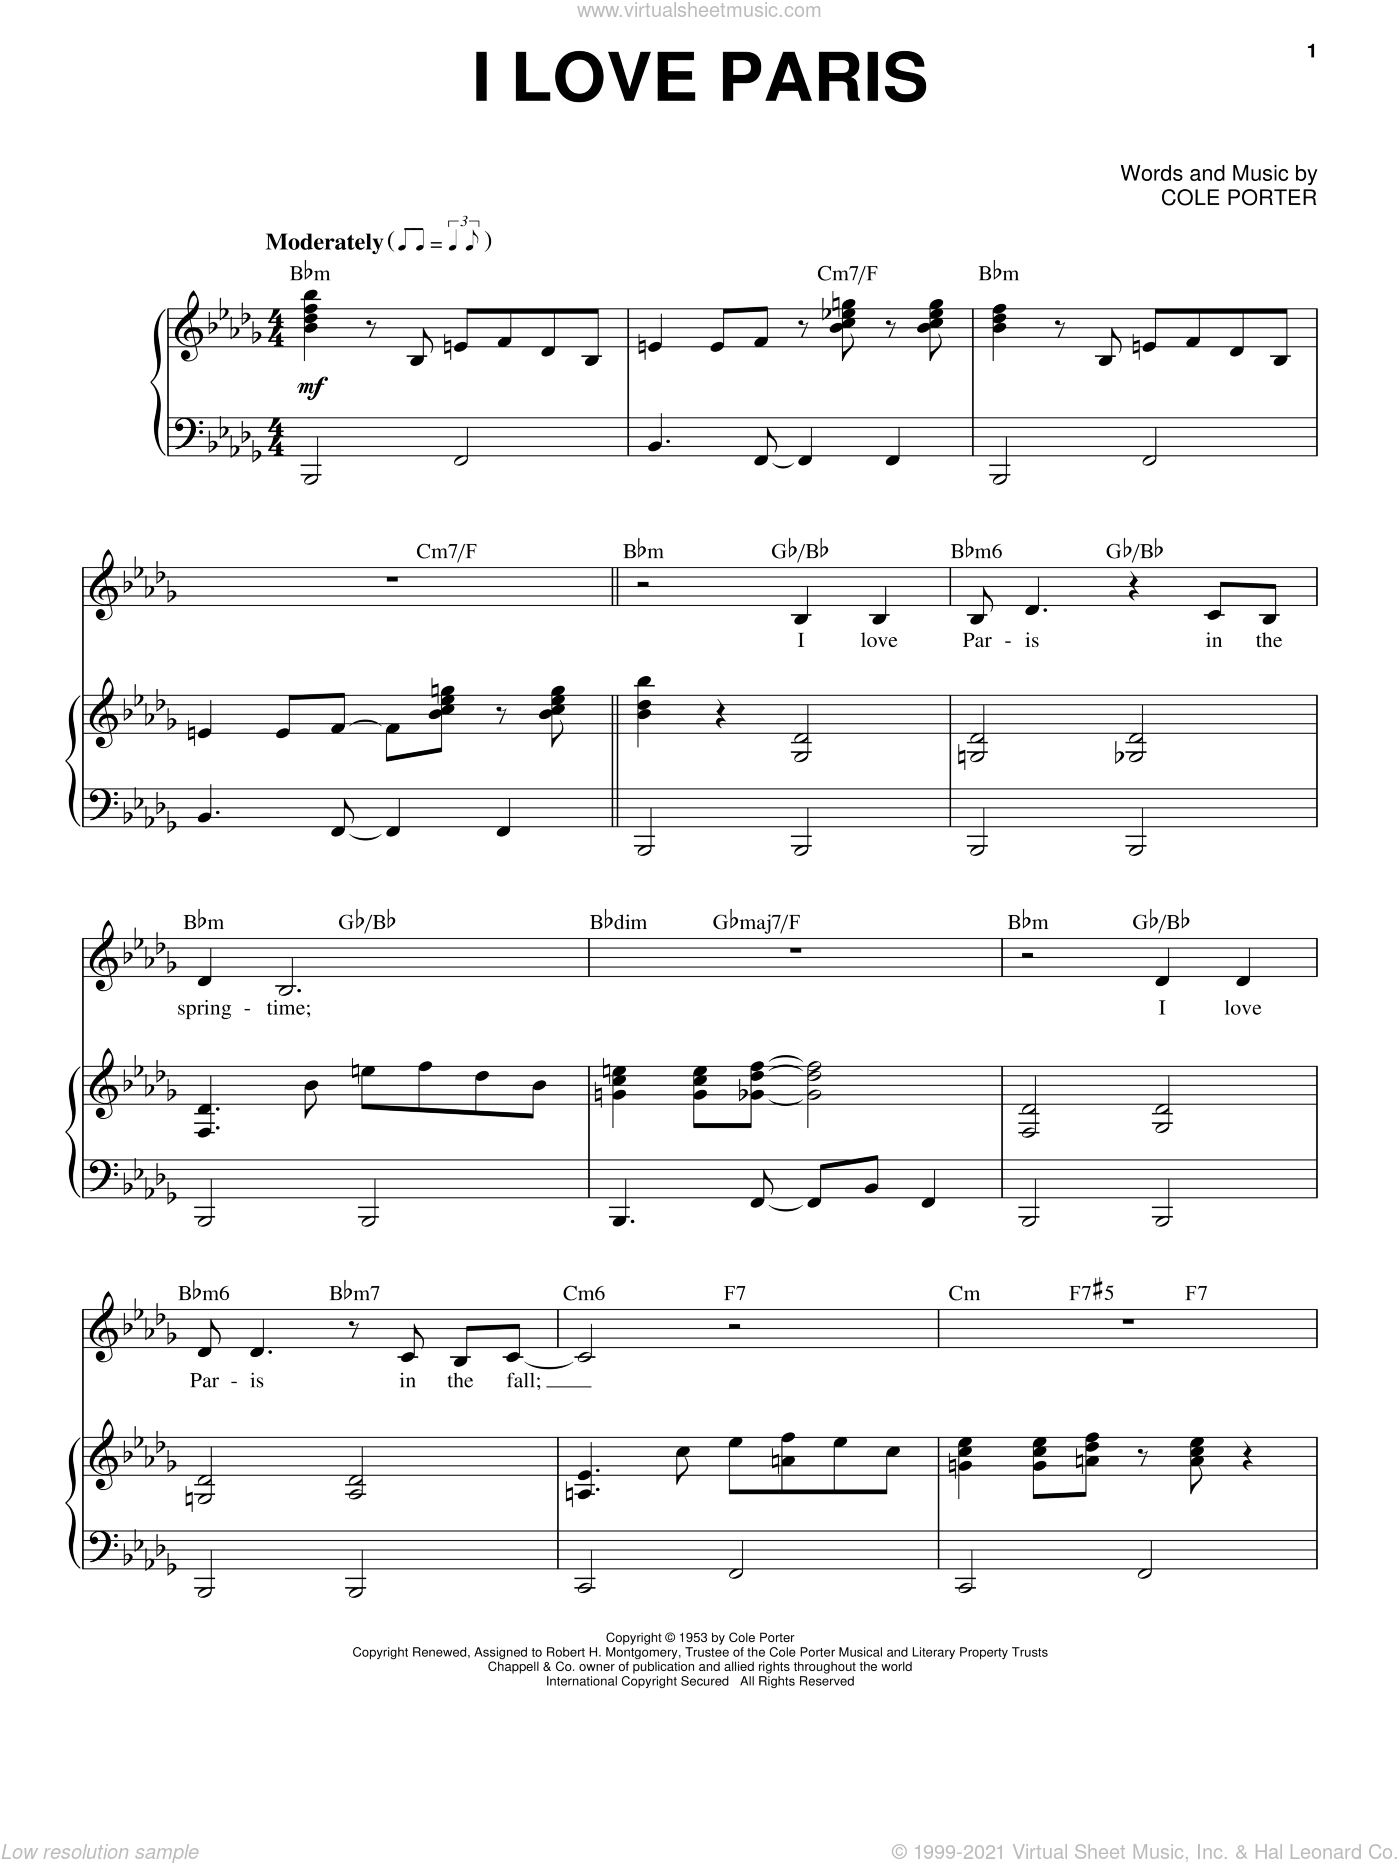 I Love Paris sheet music for voice and piano by Frank Sinatra and Cole Porter, intermediate skill level